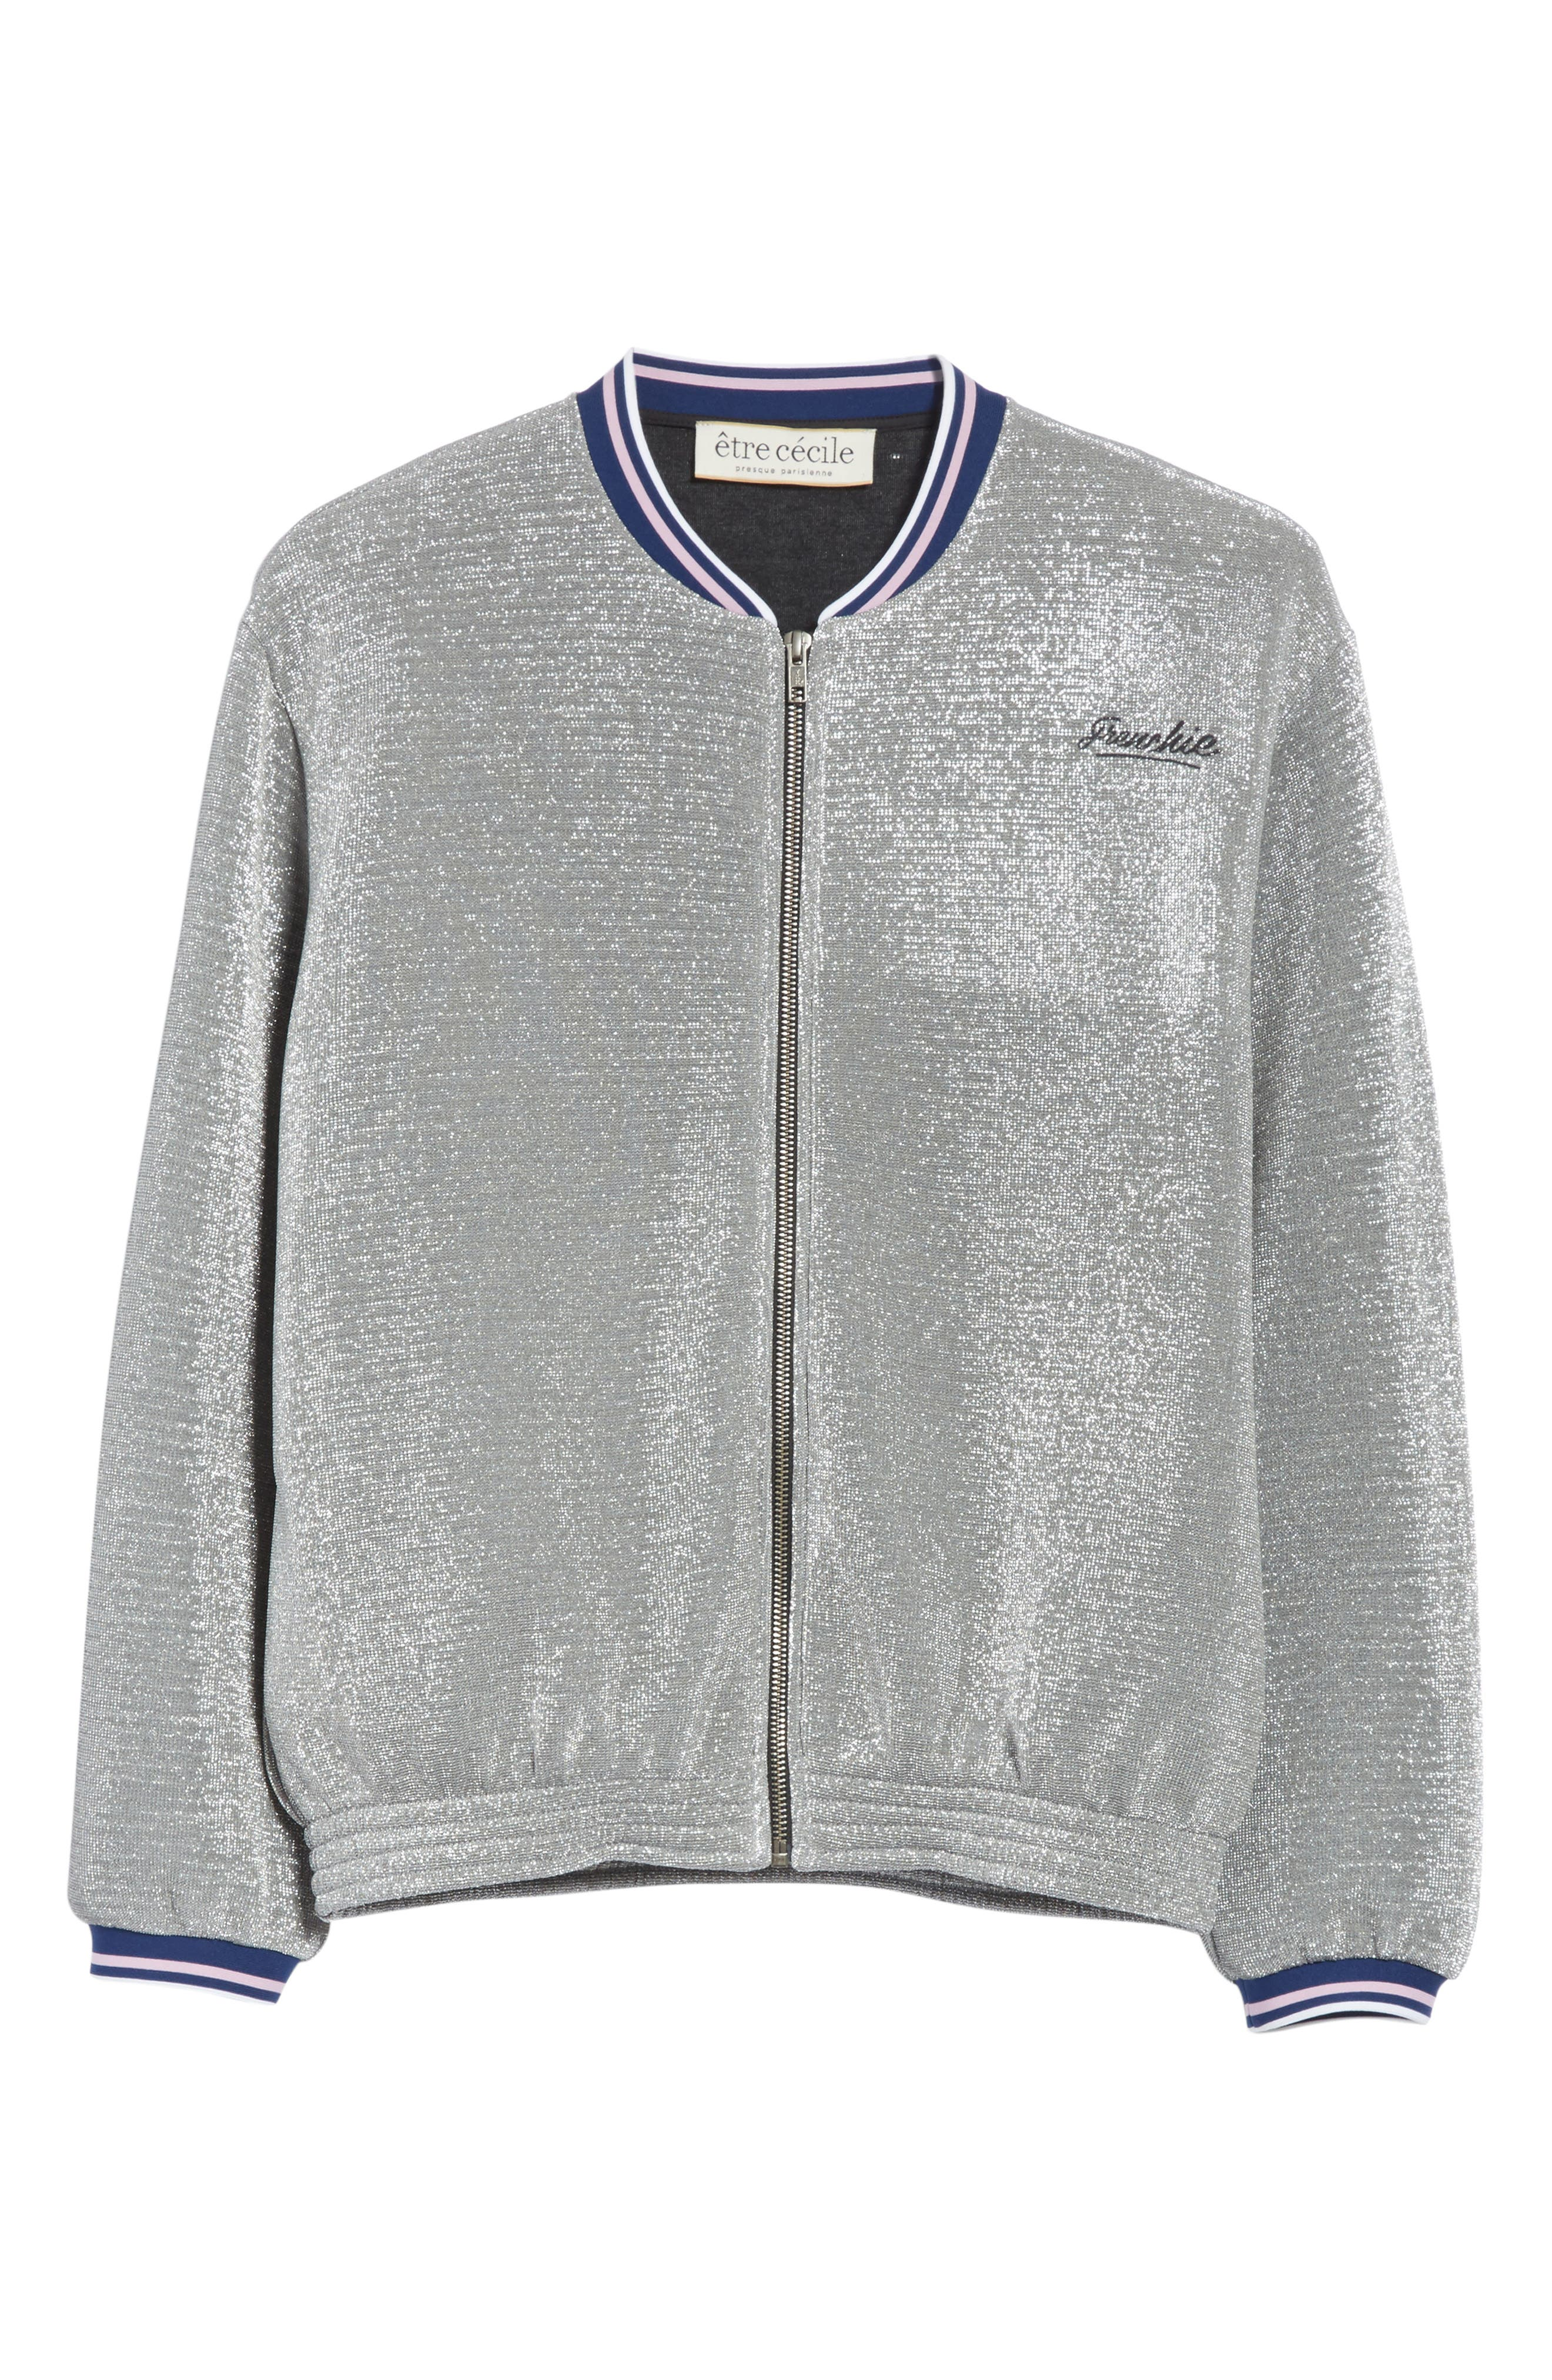 être cécile Frenchie Glitter Varsity Bomber Jacket,                             Alternate thumbnail 6, color,                             Silver